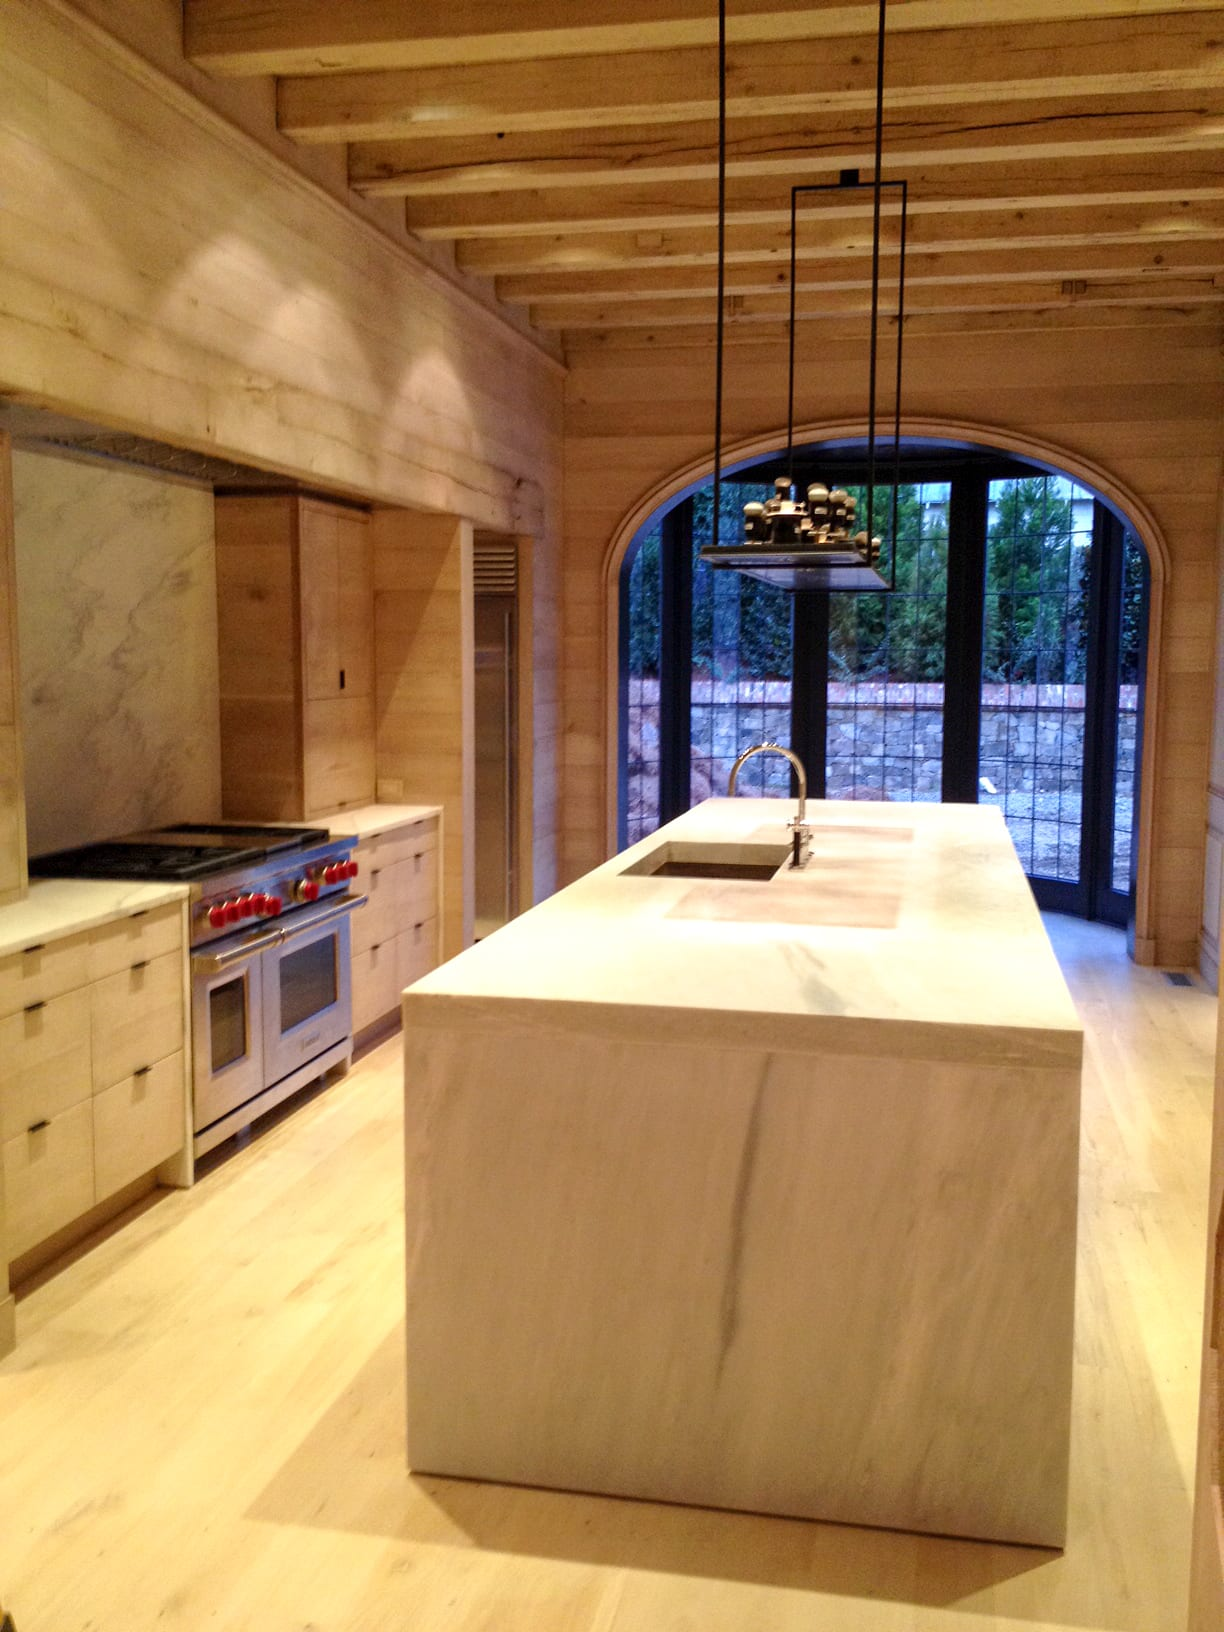 All Wood Kitchen with stainless steel appliances